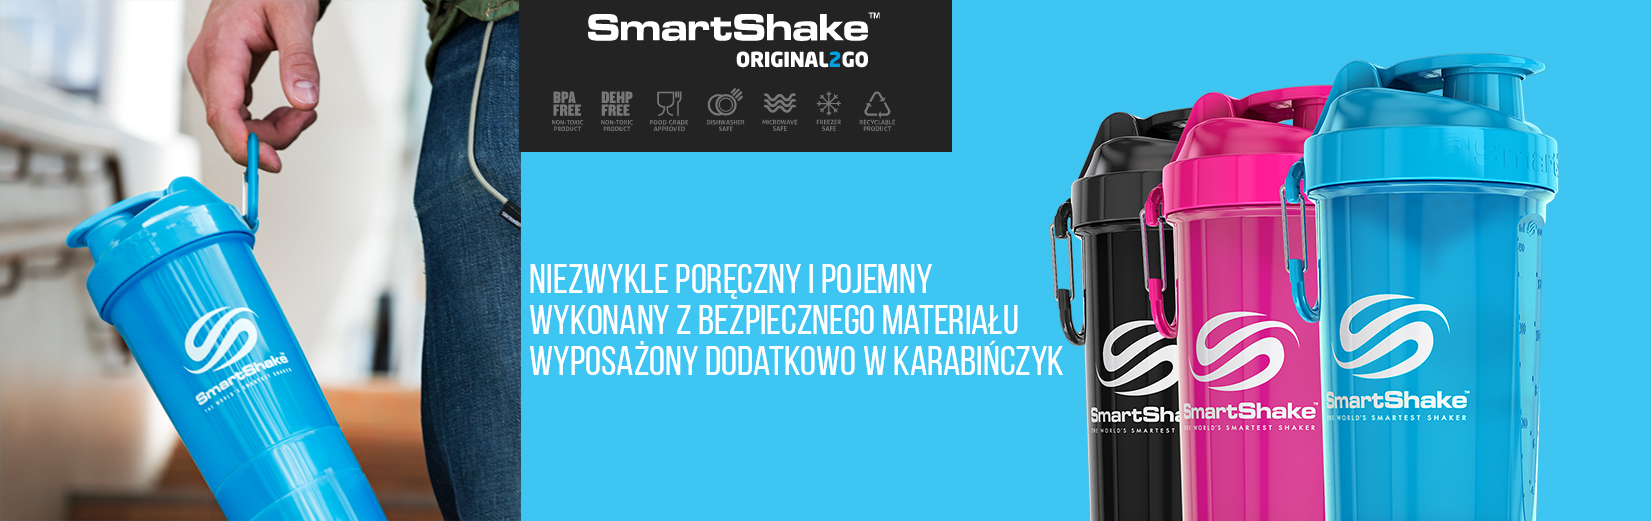 smartshake_original_2go_single1